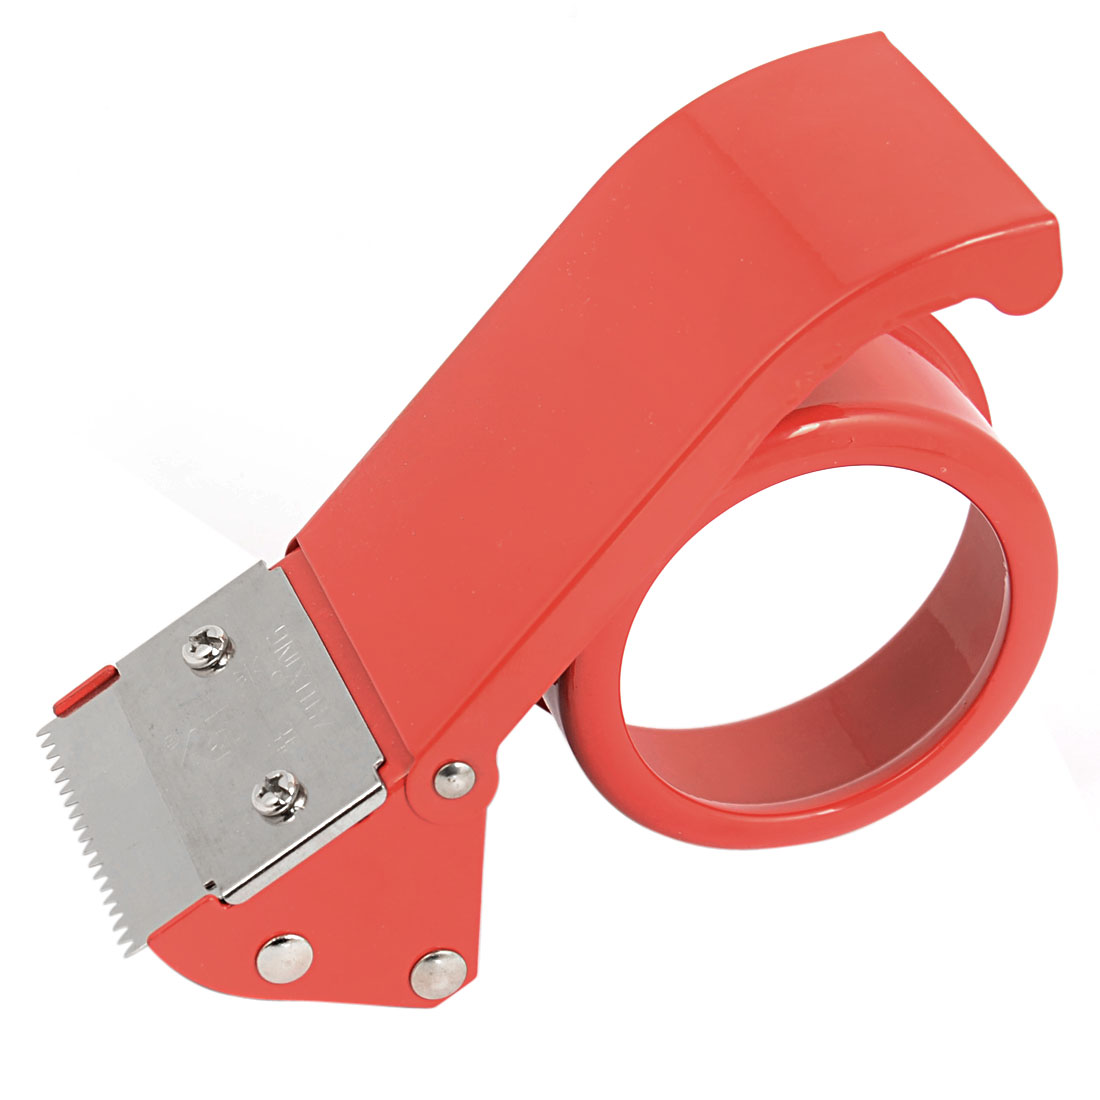 "Desktop Packing Packaging Sealing 2"" Width 8mm Inner Dia Adhesive Tape Roll Cutter Dispenser Gun Red"